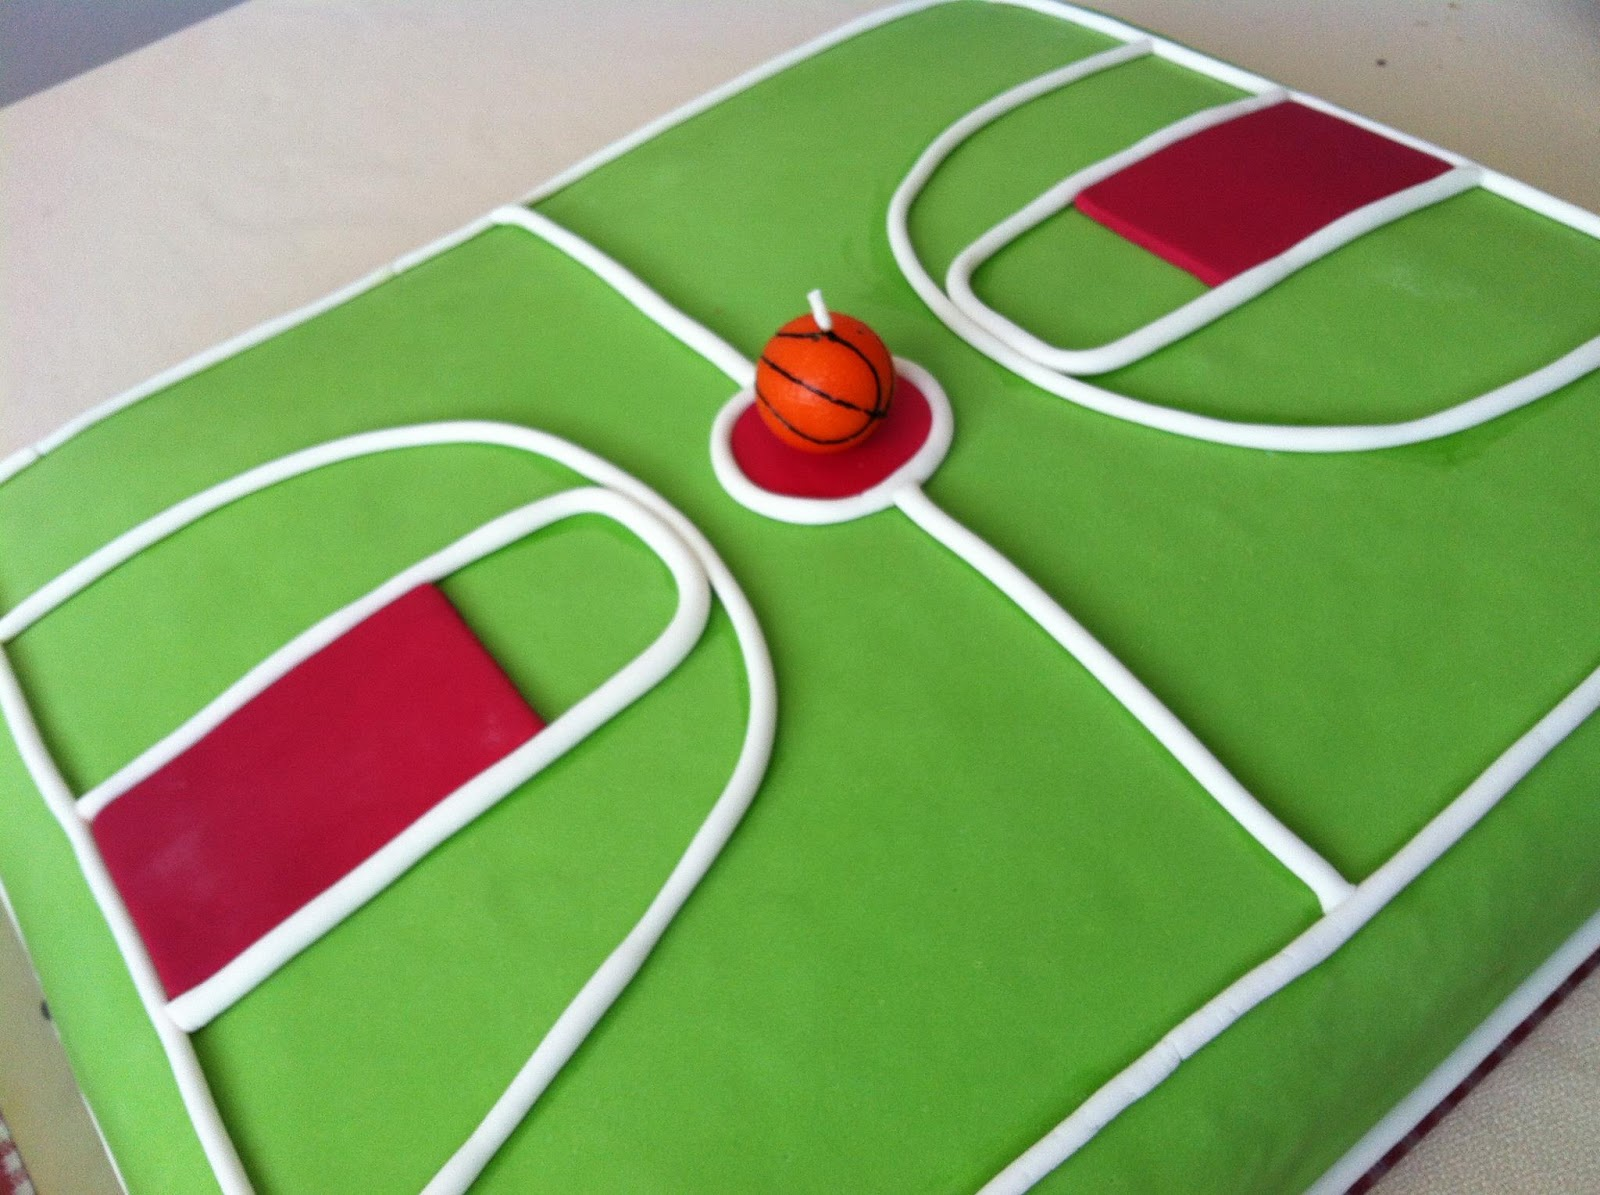 Home Made Basketball Court Cake